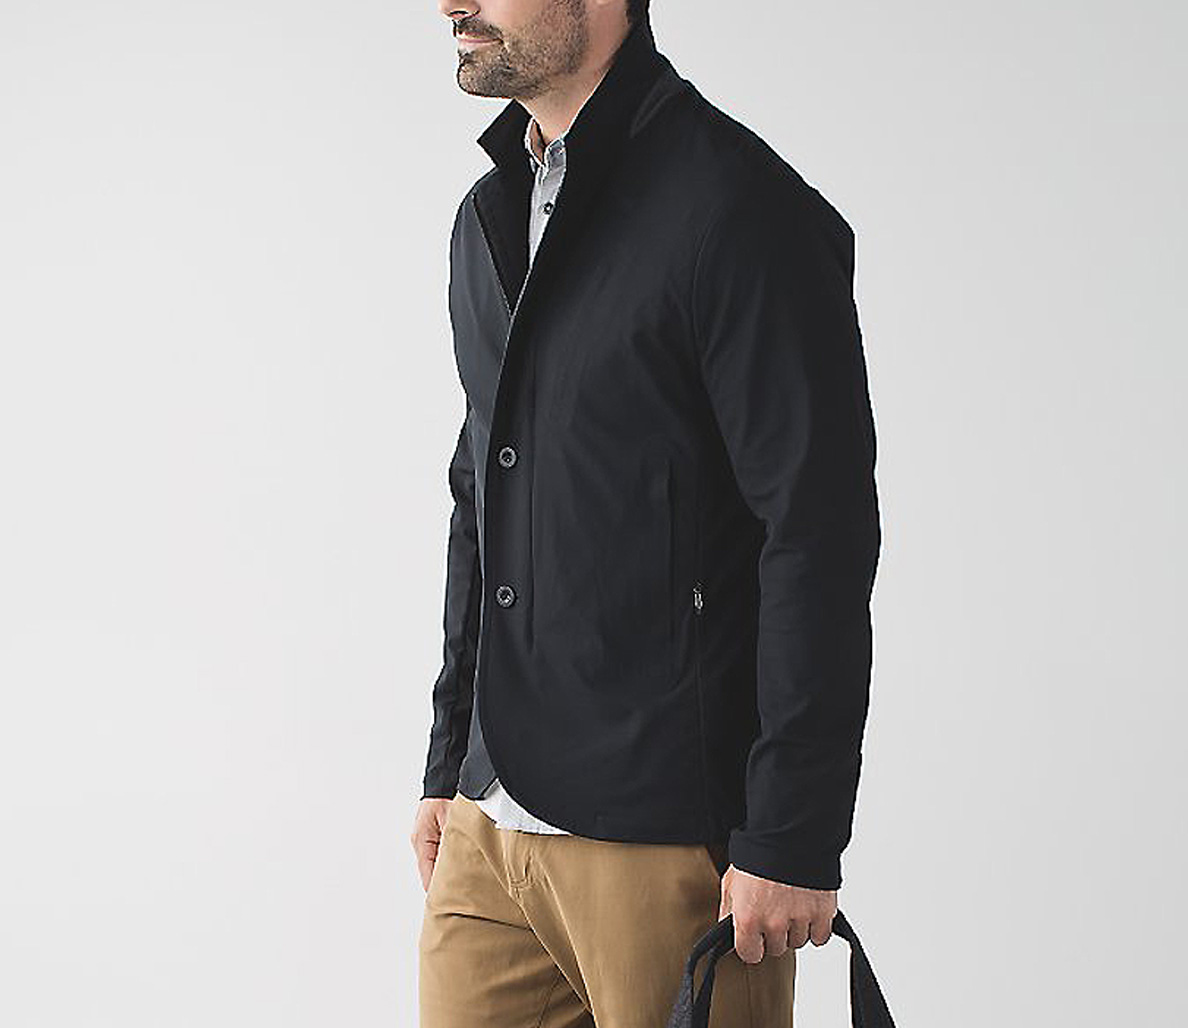 Sports Performance Clothes You Can Wear to Work   Men's Journal